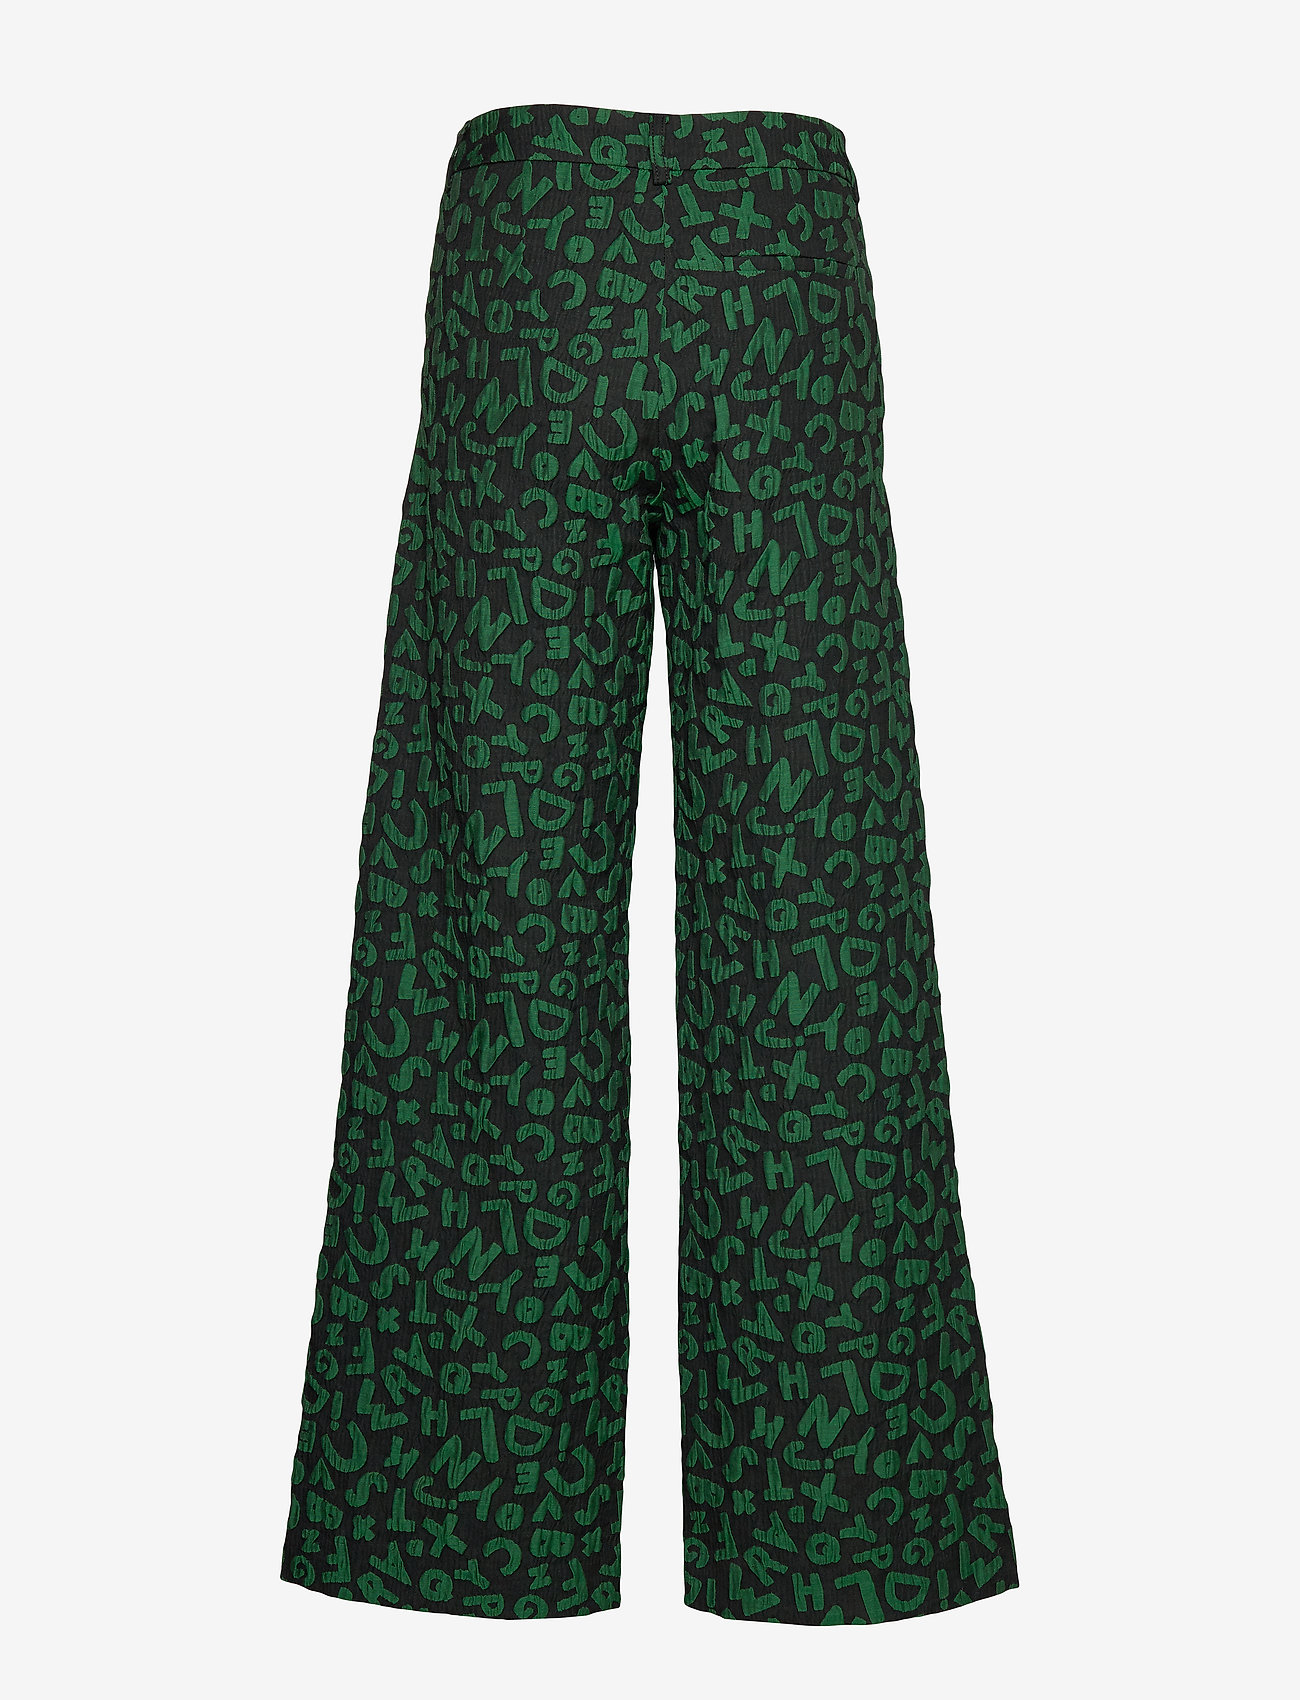 Ease Trousers (Green Letter) (165 €) - Hope o82a0